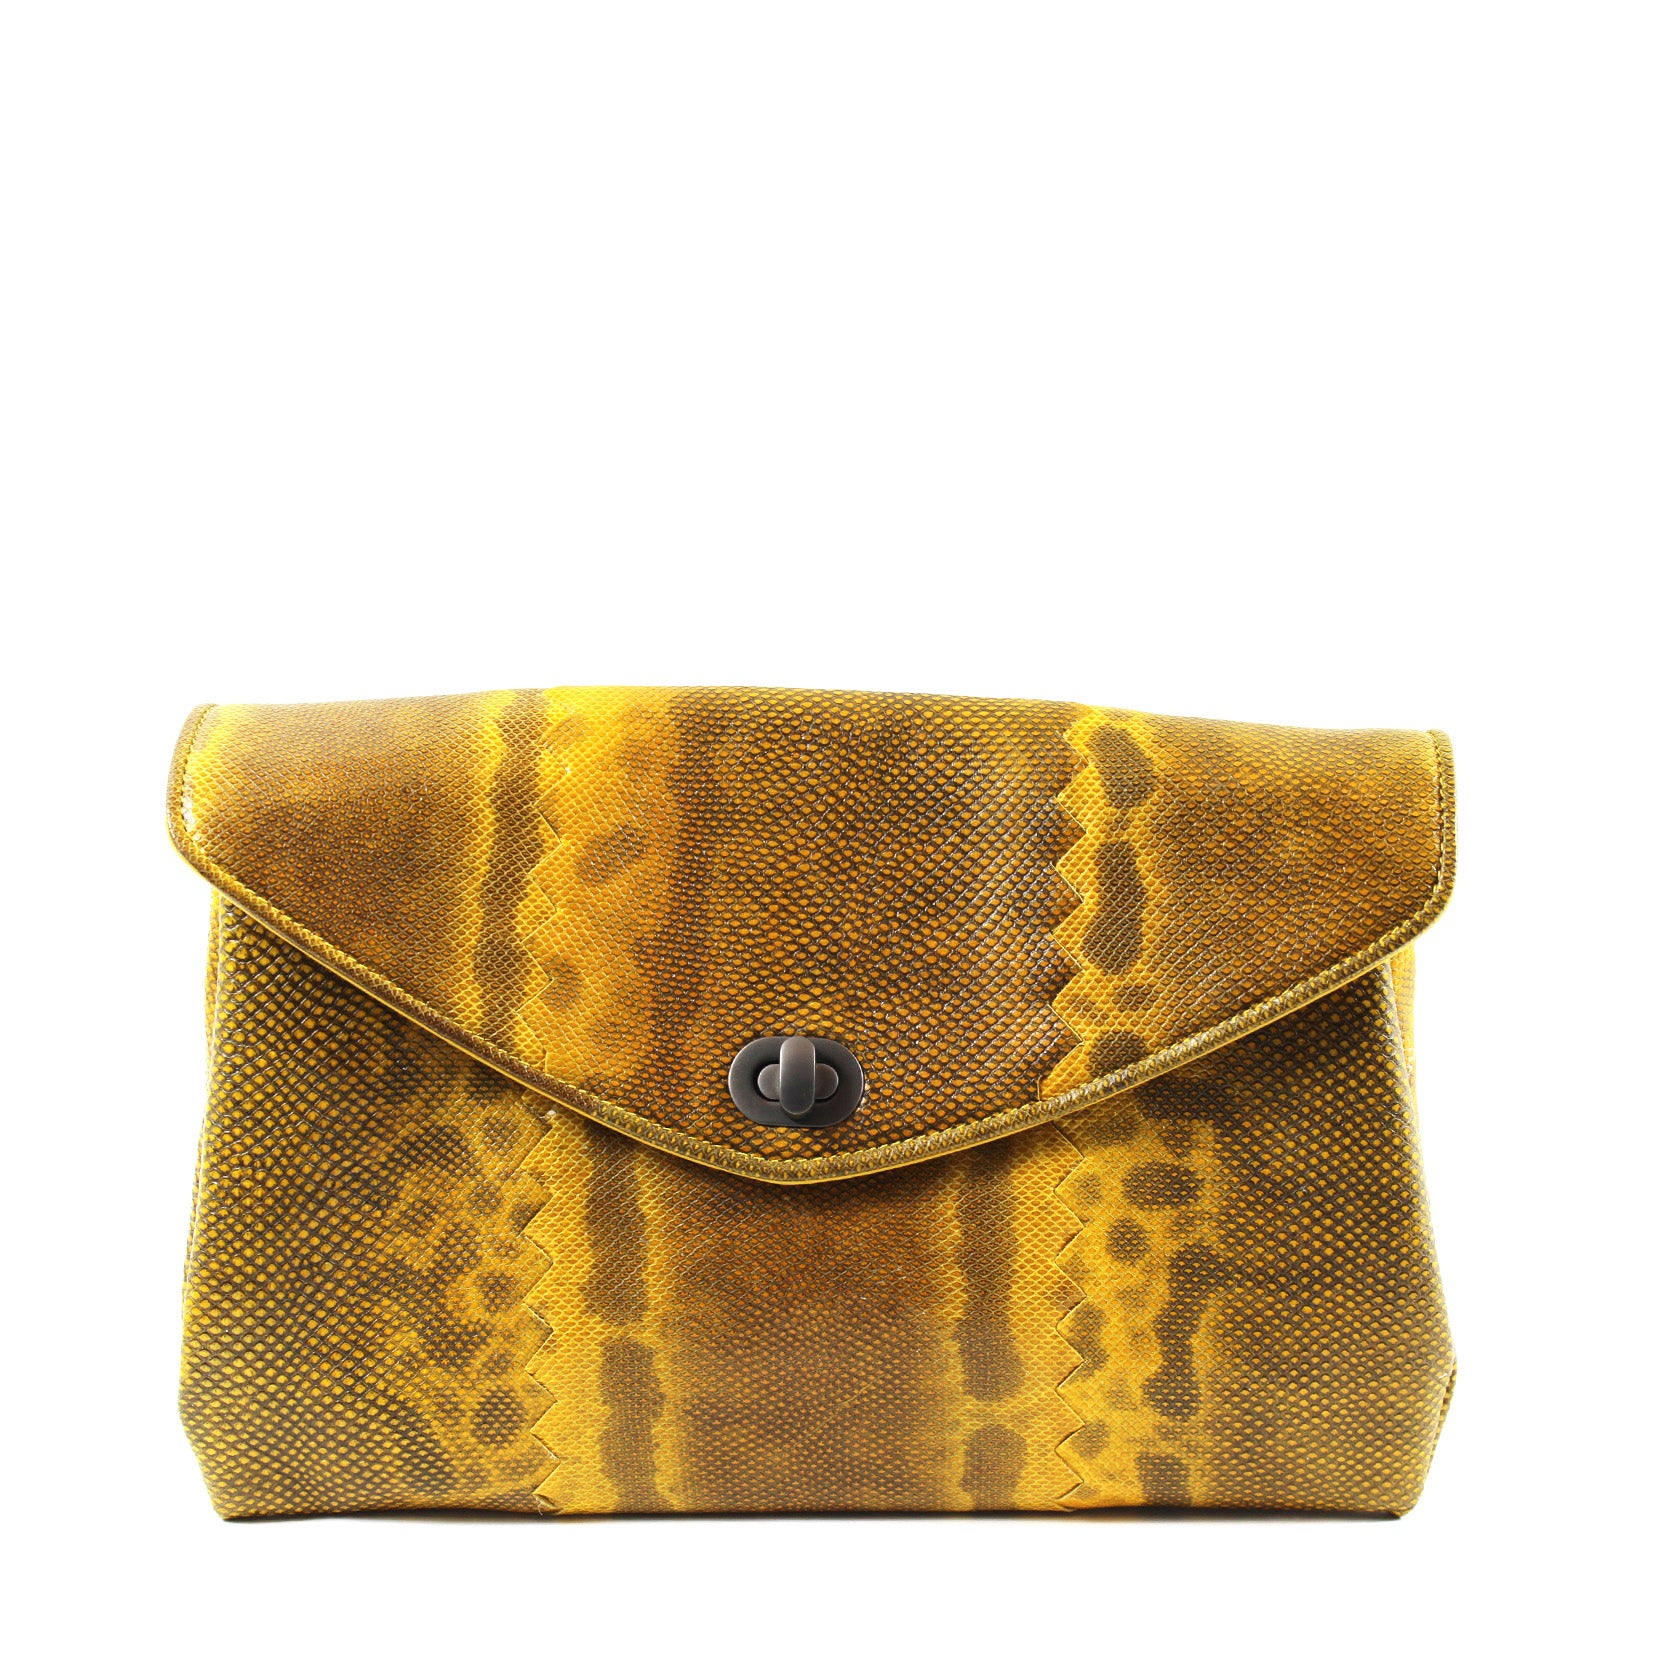 83d81a4557 Bottega Veneta Yellow Lizard Clutch – Encore Resale.com